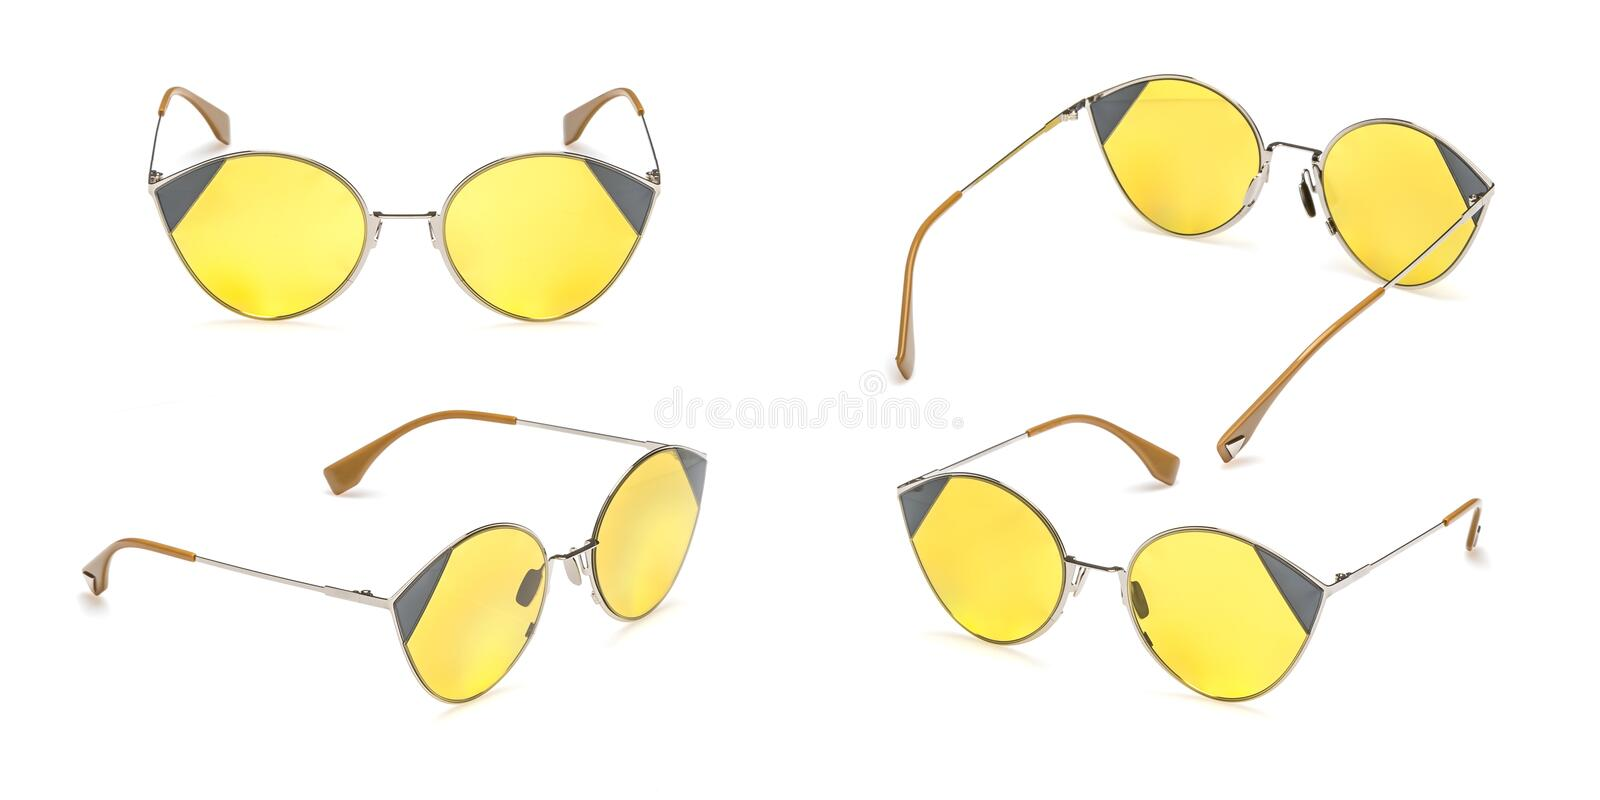 Set Retro yellow sunglasses in round frame isolated on white background. Collection fashion Vintage summer sunglasses royalty free stock photo